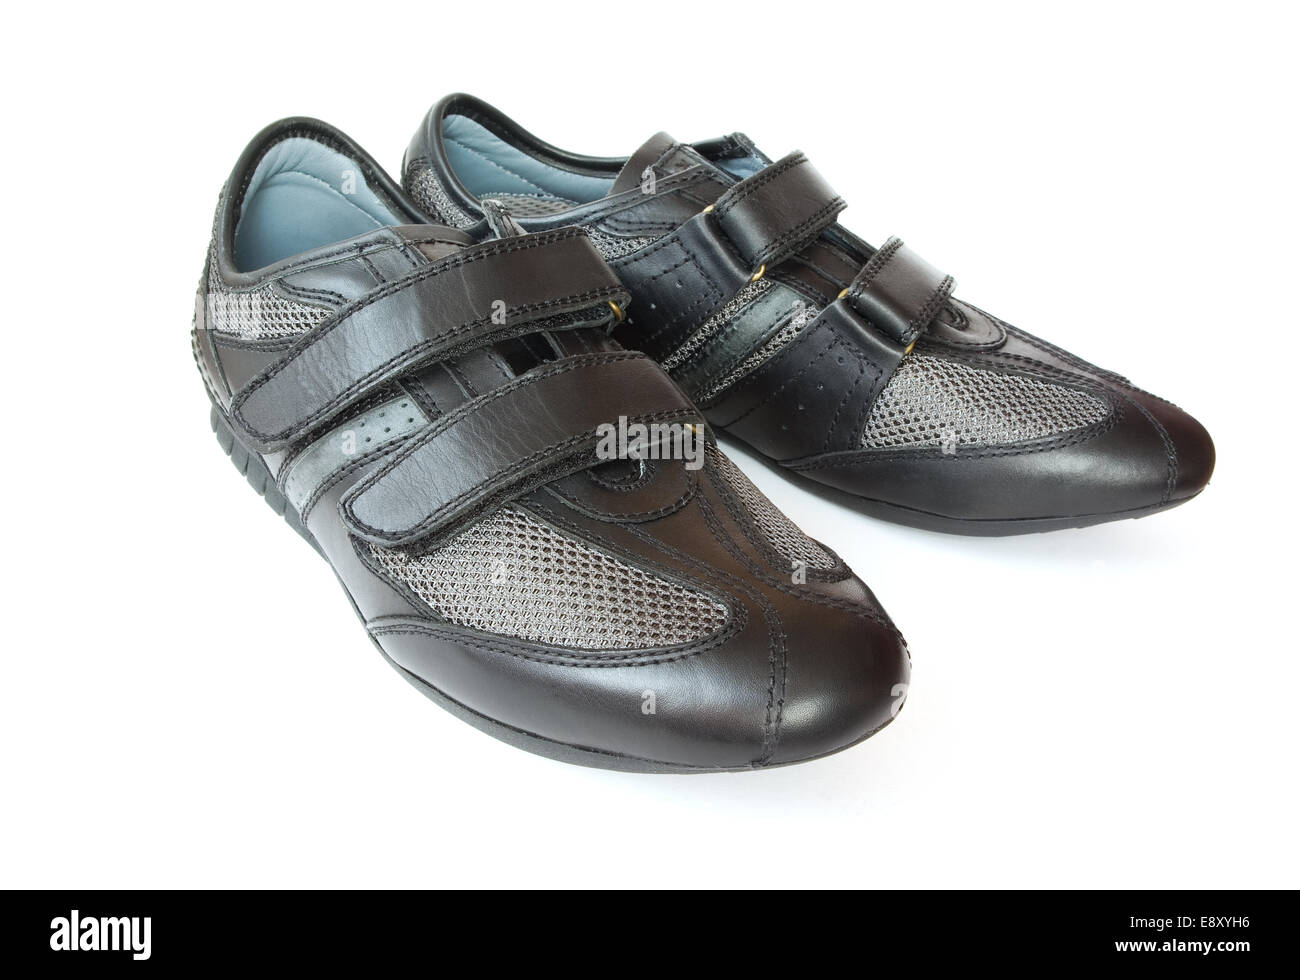 black sport shoes - Stock Image